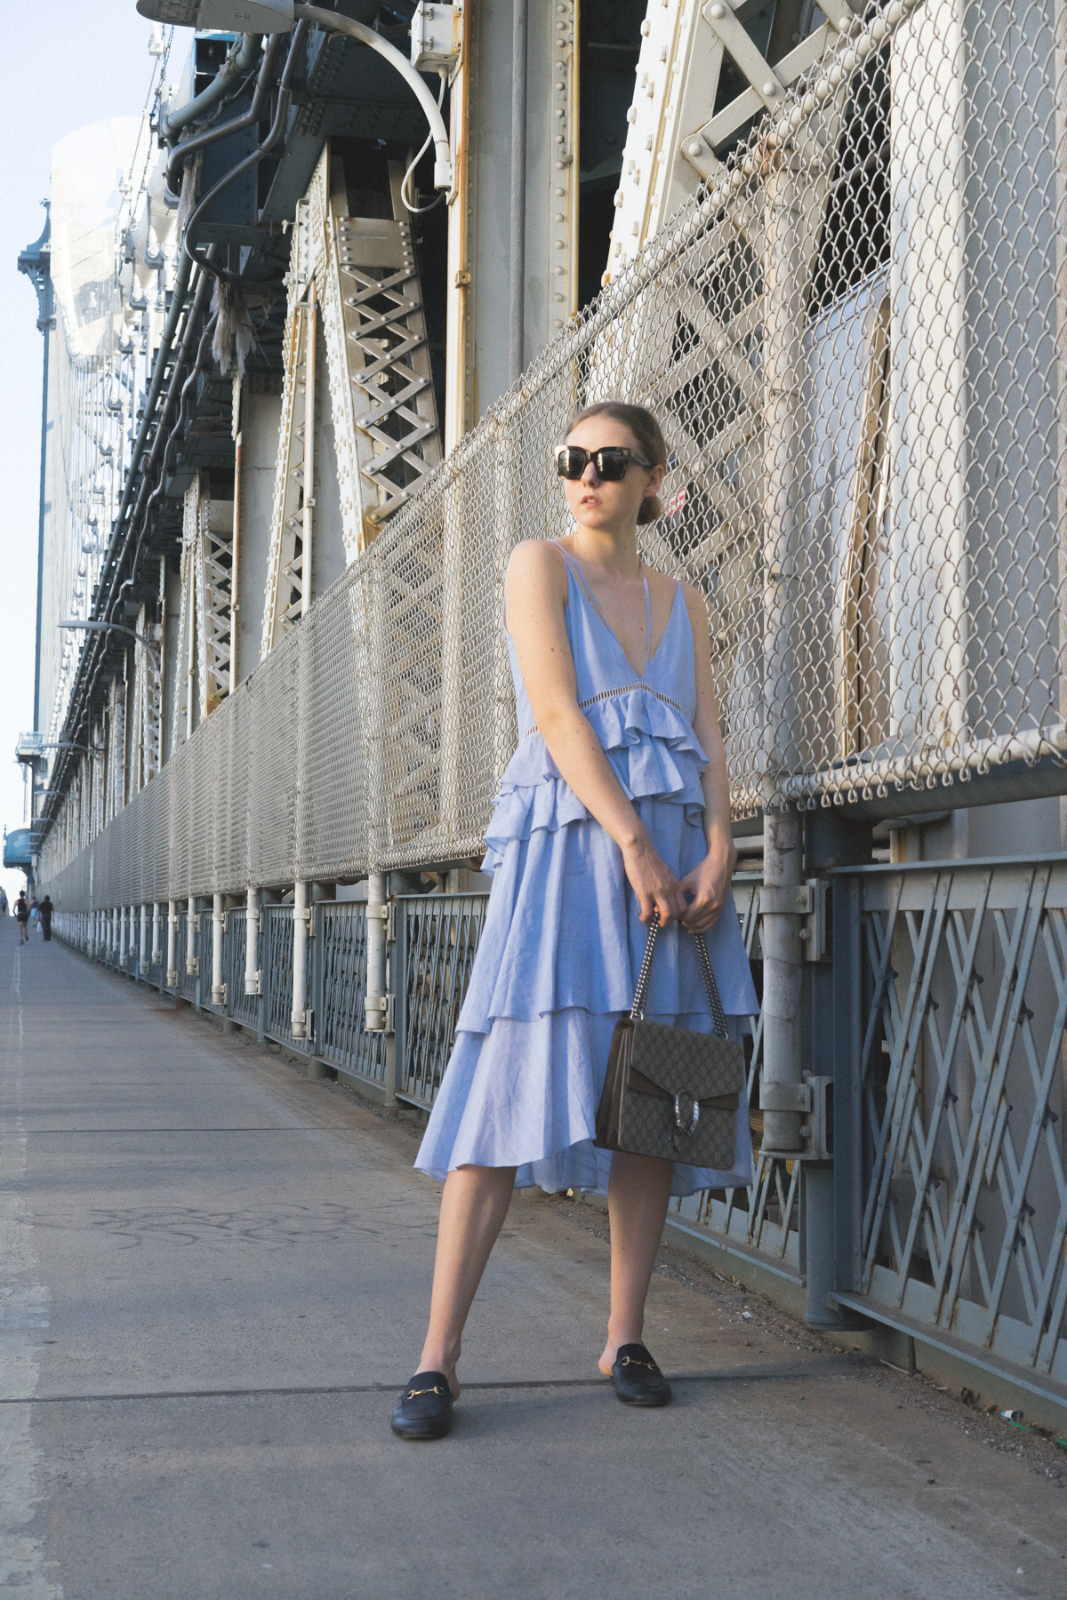 Lala Berlin Kleid_Manhatten Bridge_The-Limits-of-Control-Fashion-Fashionblogger-Blogger-Berlin-Deutschland-Modeblog-Modeblogger